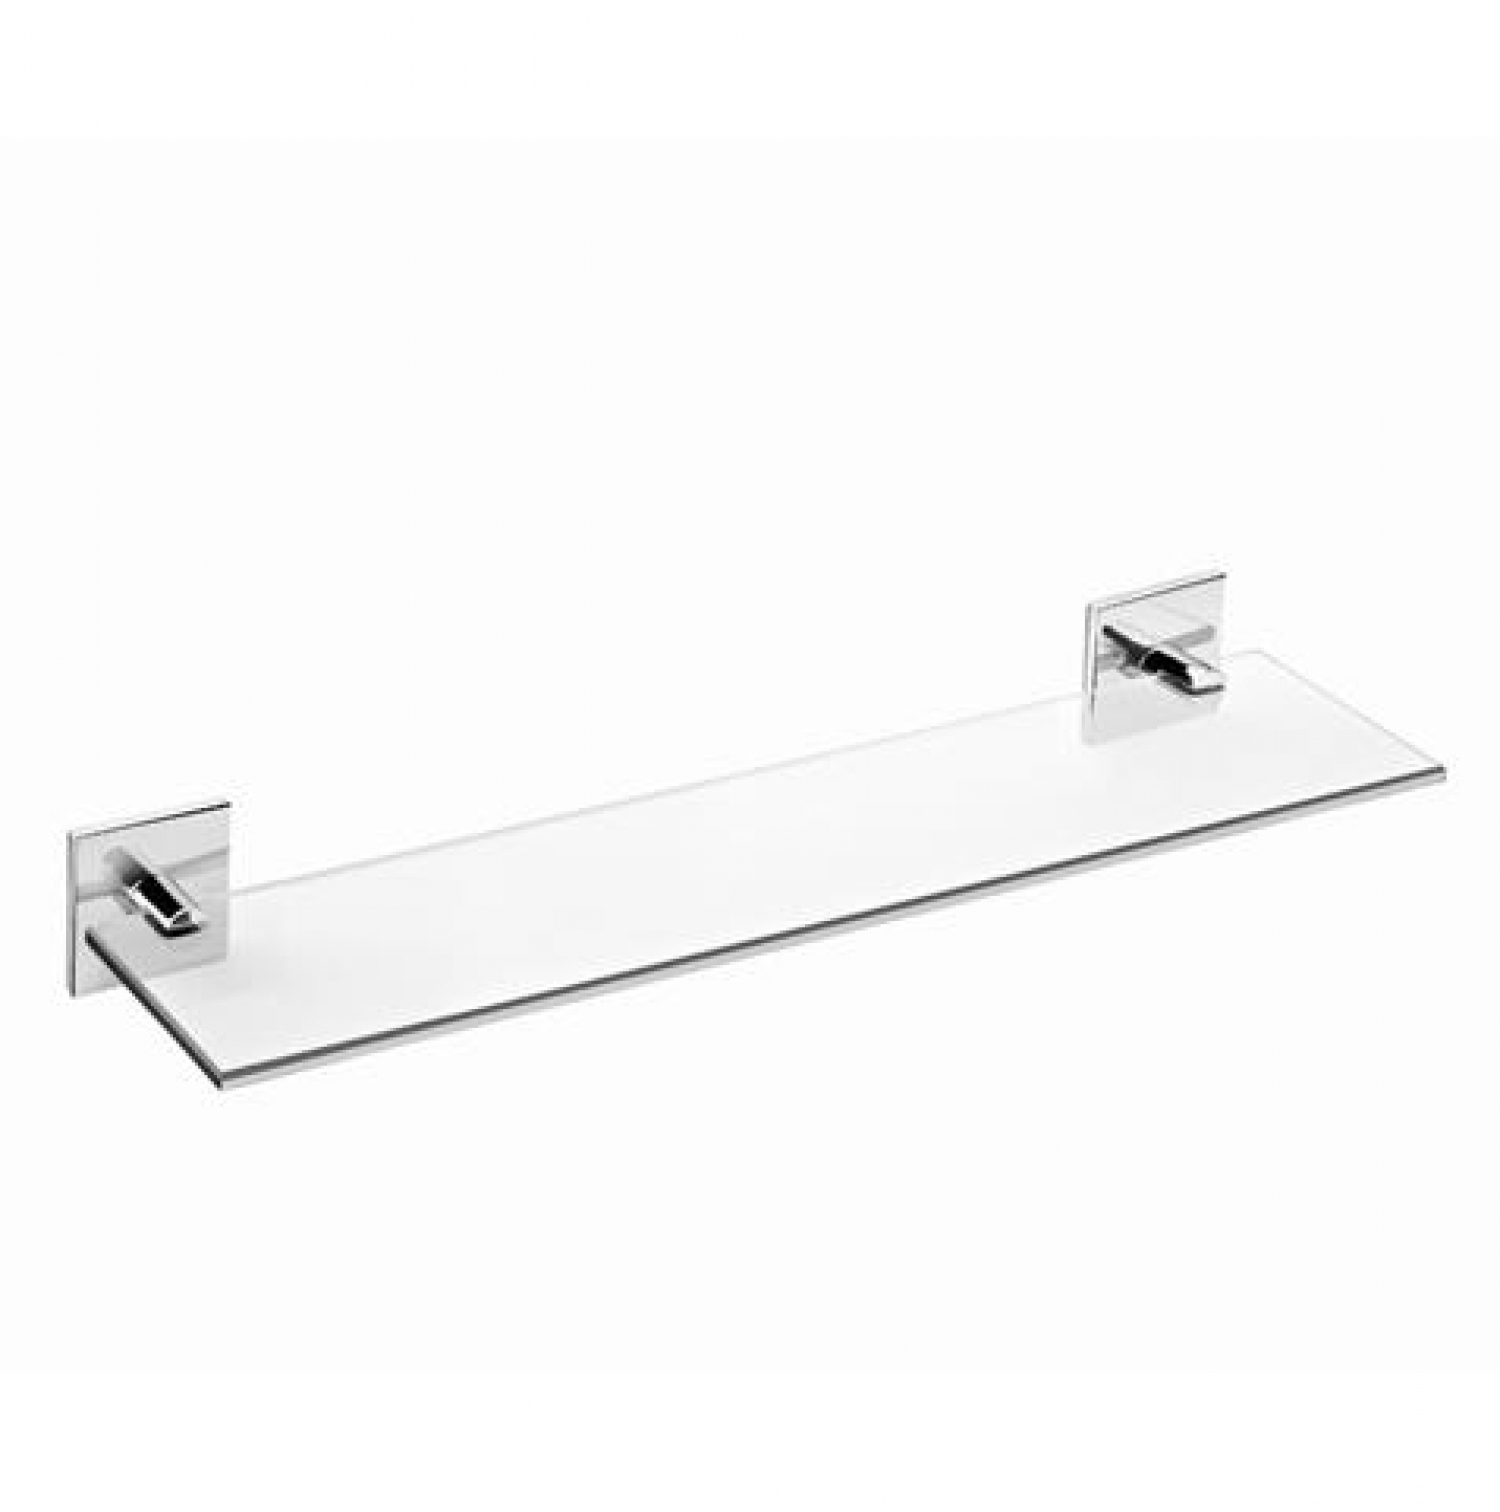 tablette salle de bain en verre 40 cm a coller duo square bath